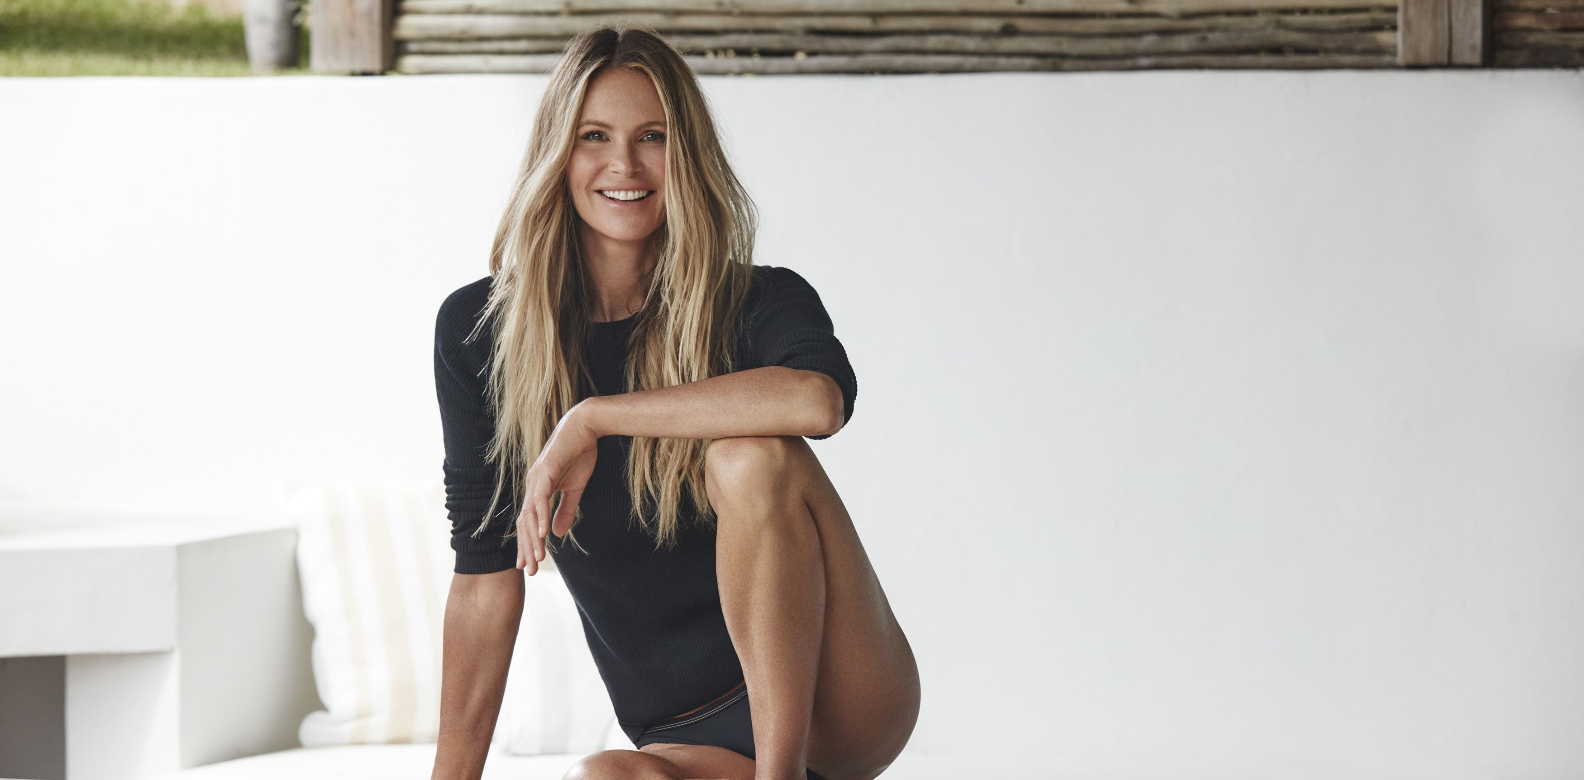 How to Detox Like Elle The Body Macpherson recommend